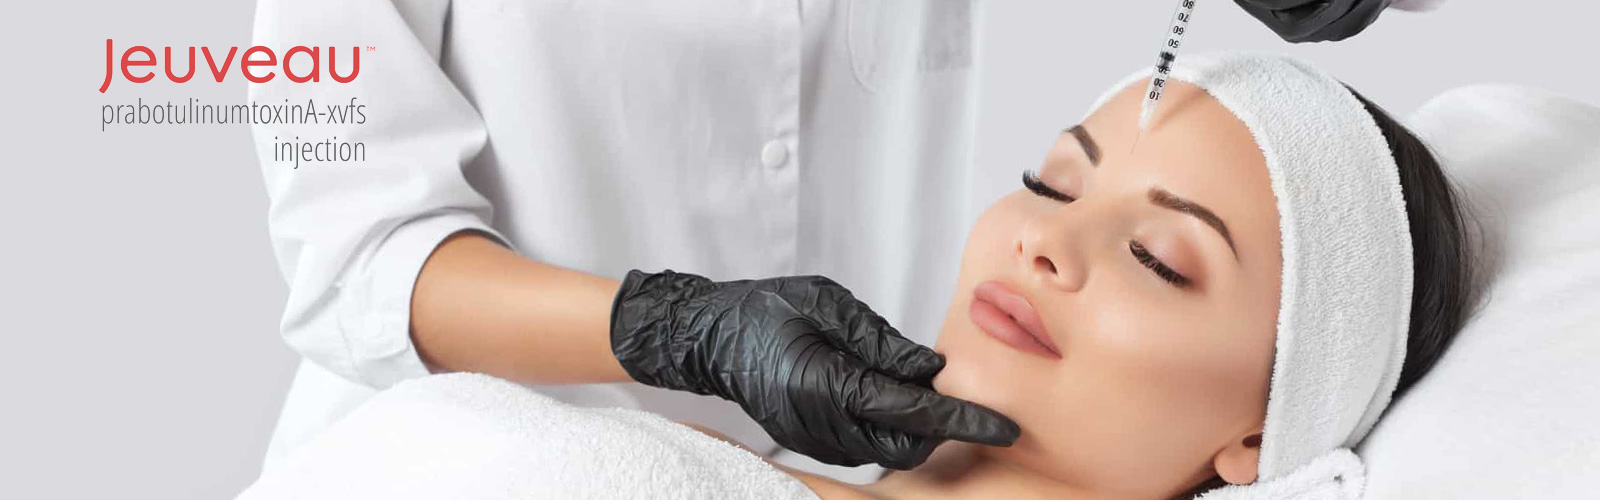 Discover the latest in anti-wrinkle injections with Jeuveau Treatment in Westlake, OH